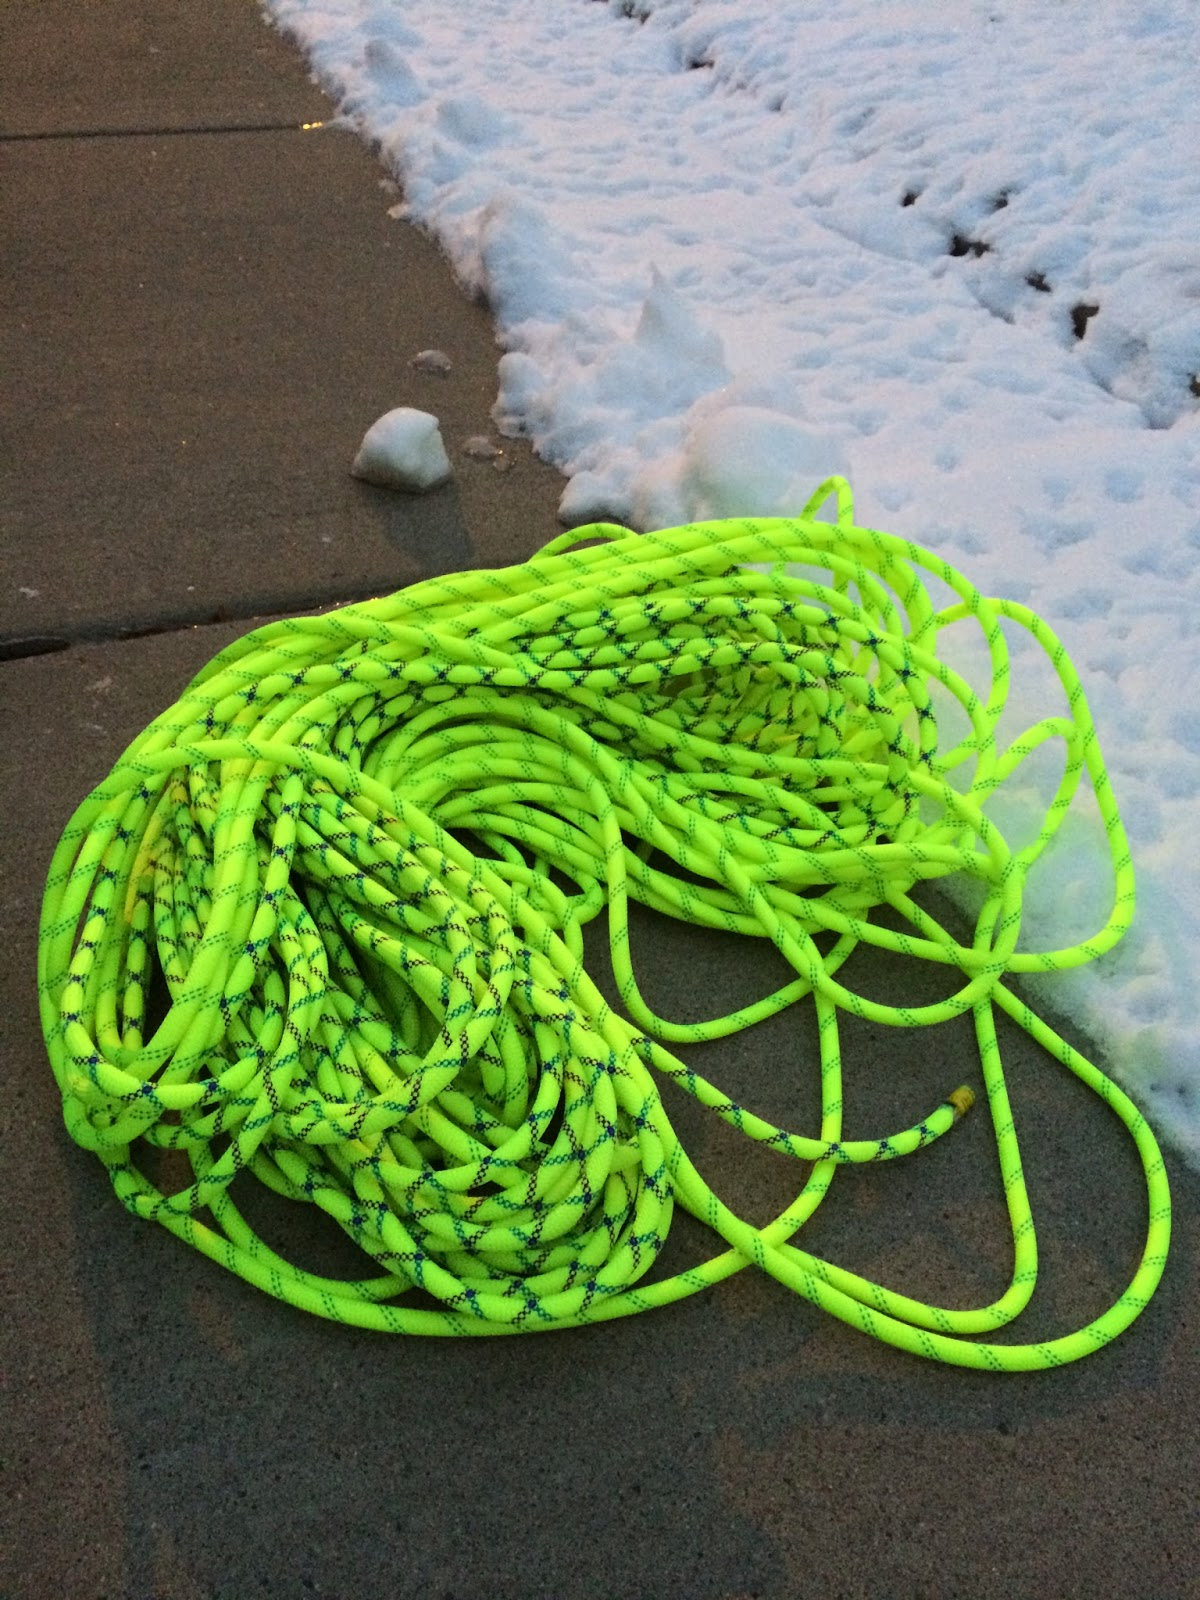 Sterling Evolution Velocity BiColor 9.8mm 70m Rope in a pile on the ground